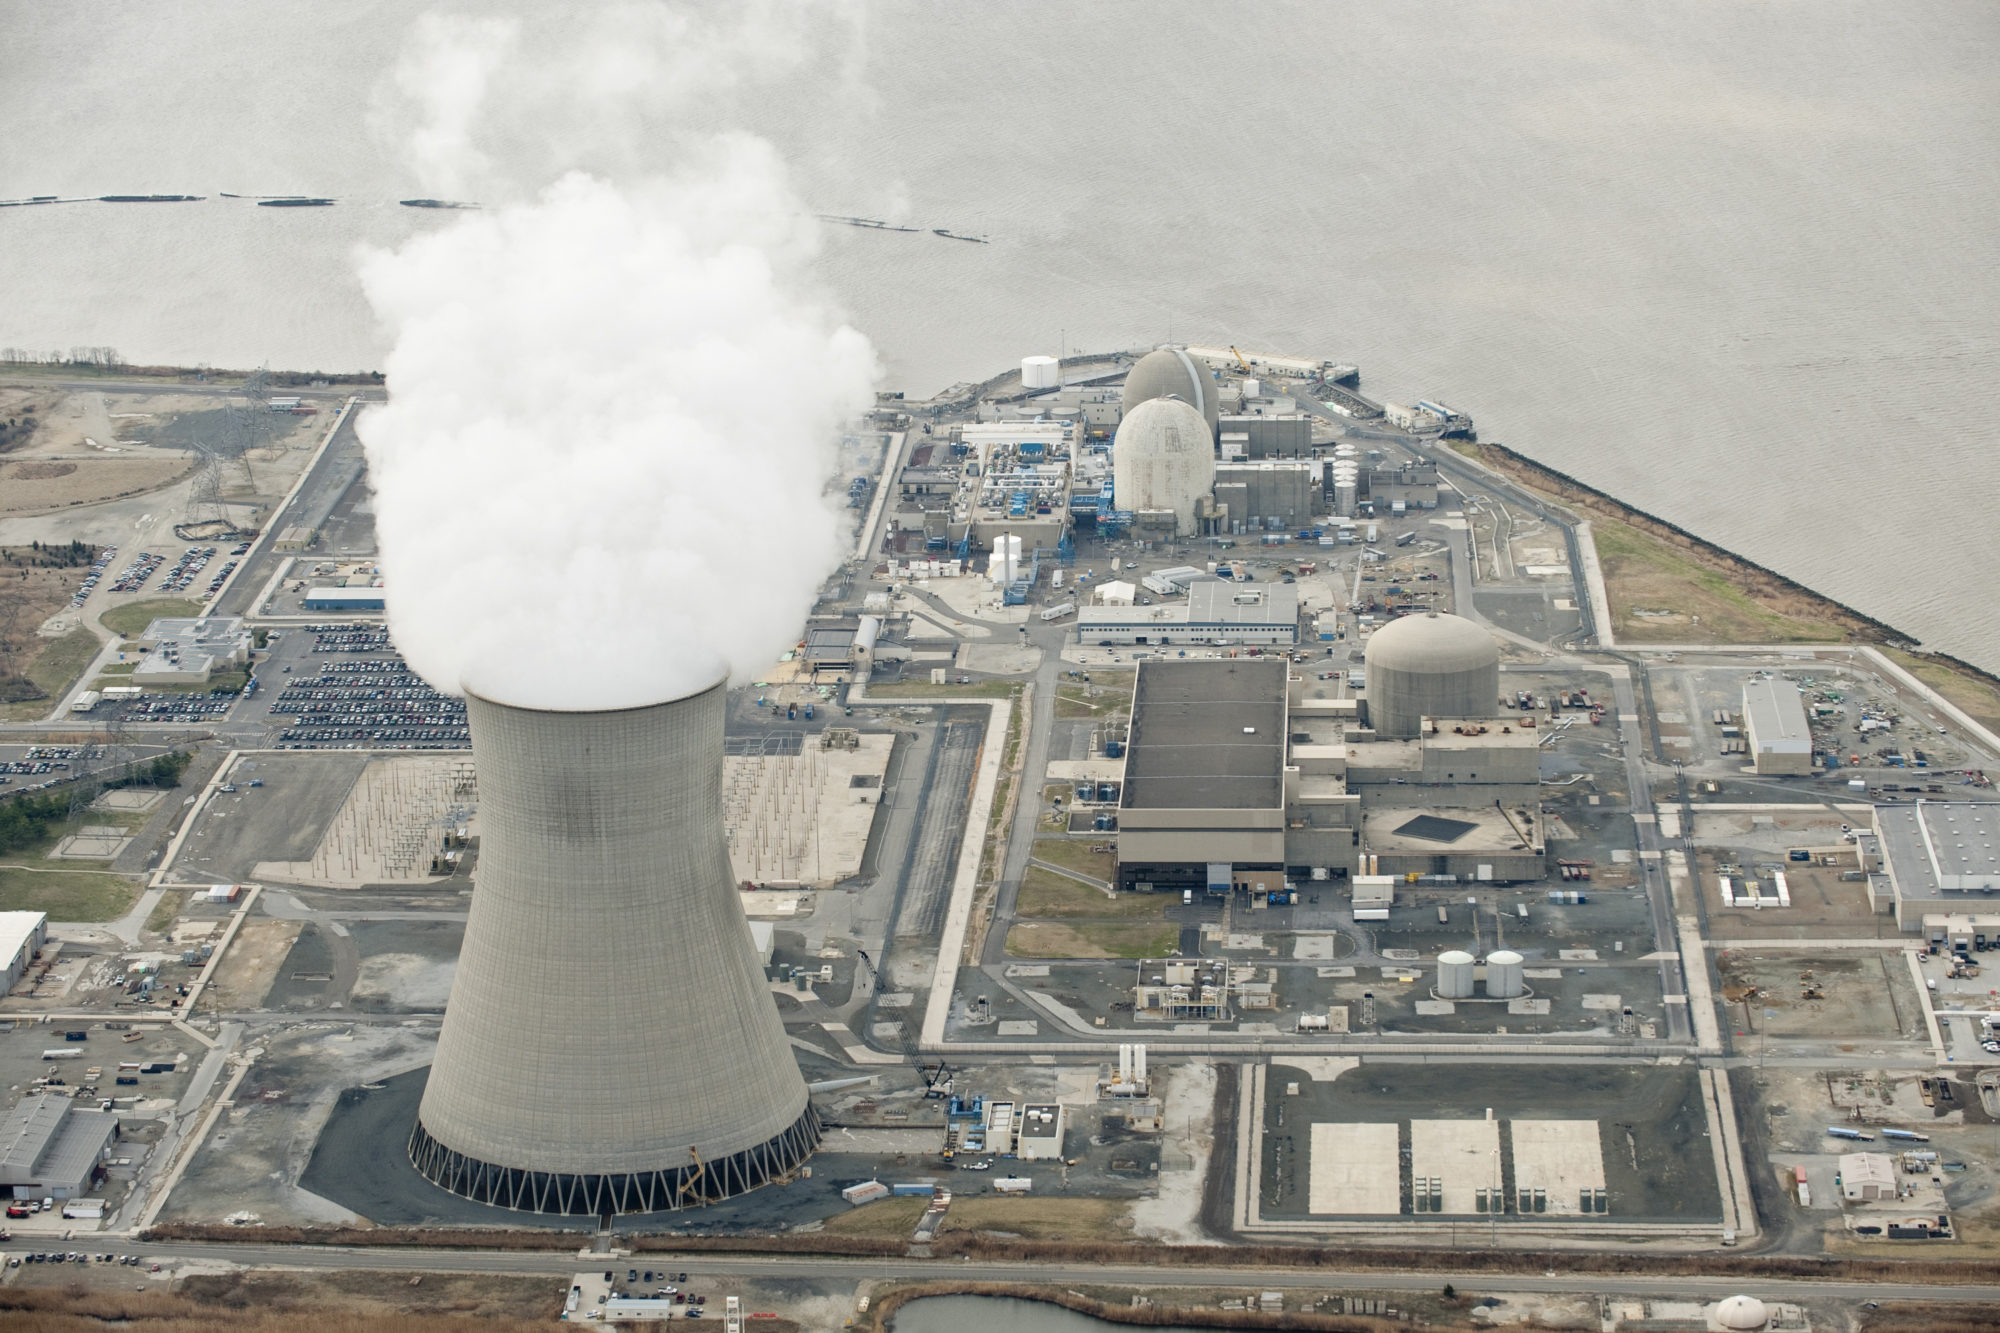 In a Time of Cheap Fossil Fuels, Nuclear Power Companies Are Seeking — and Getting — Big Subsidies